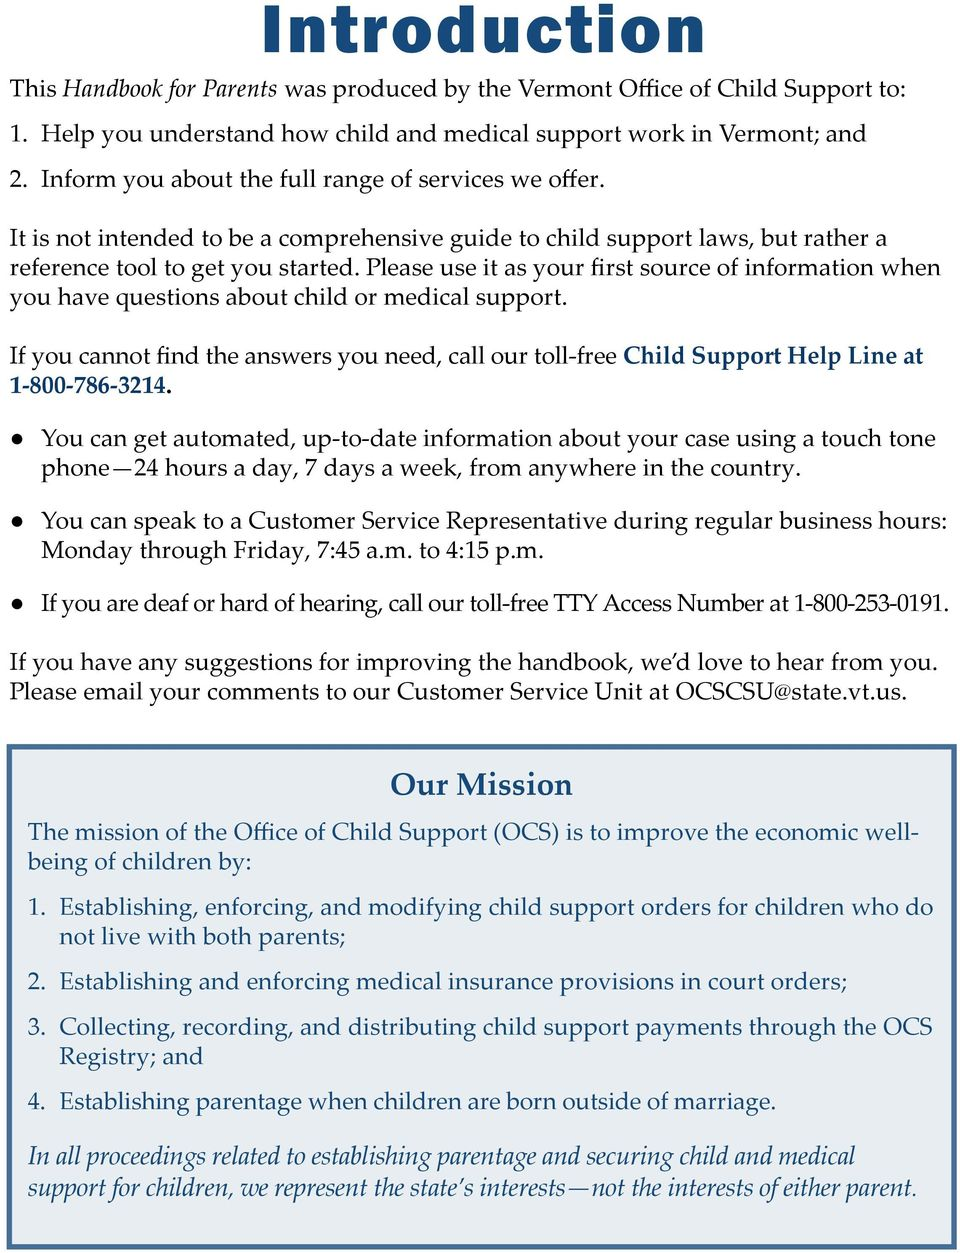 Please use it as your first source of information when you have questions about child or medical support.